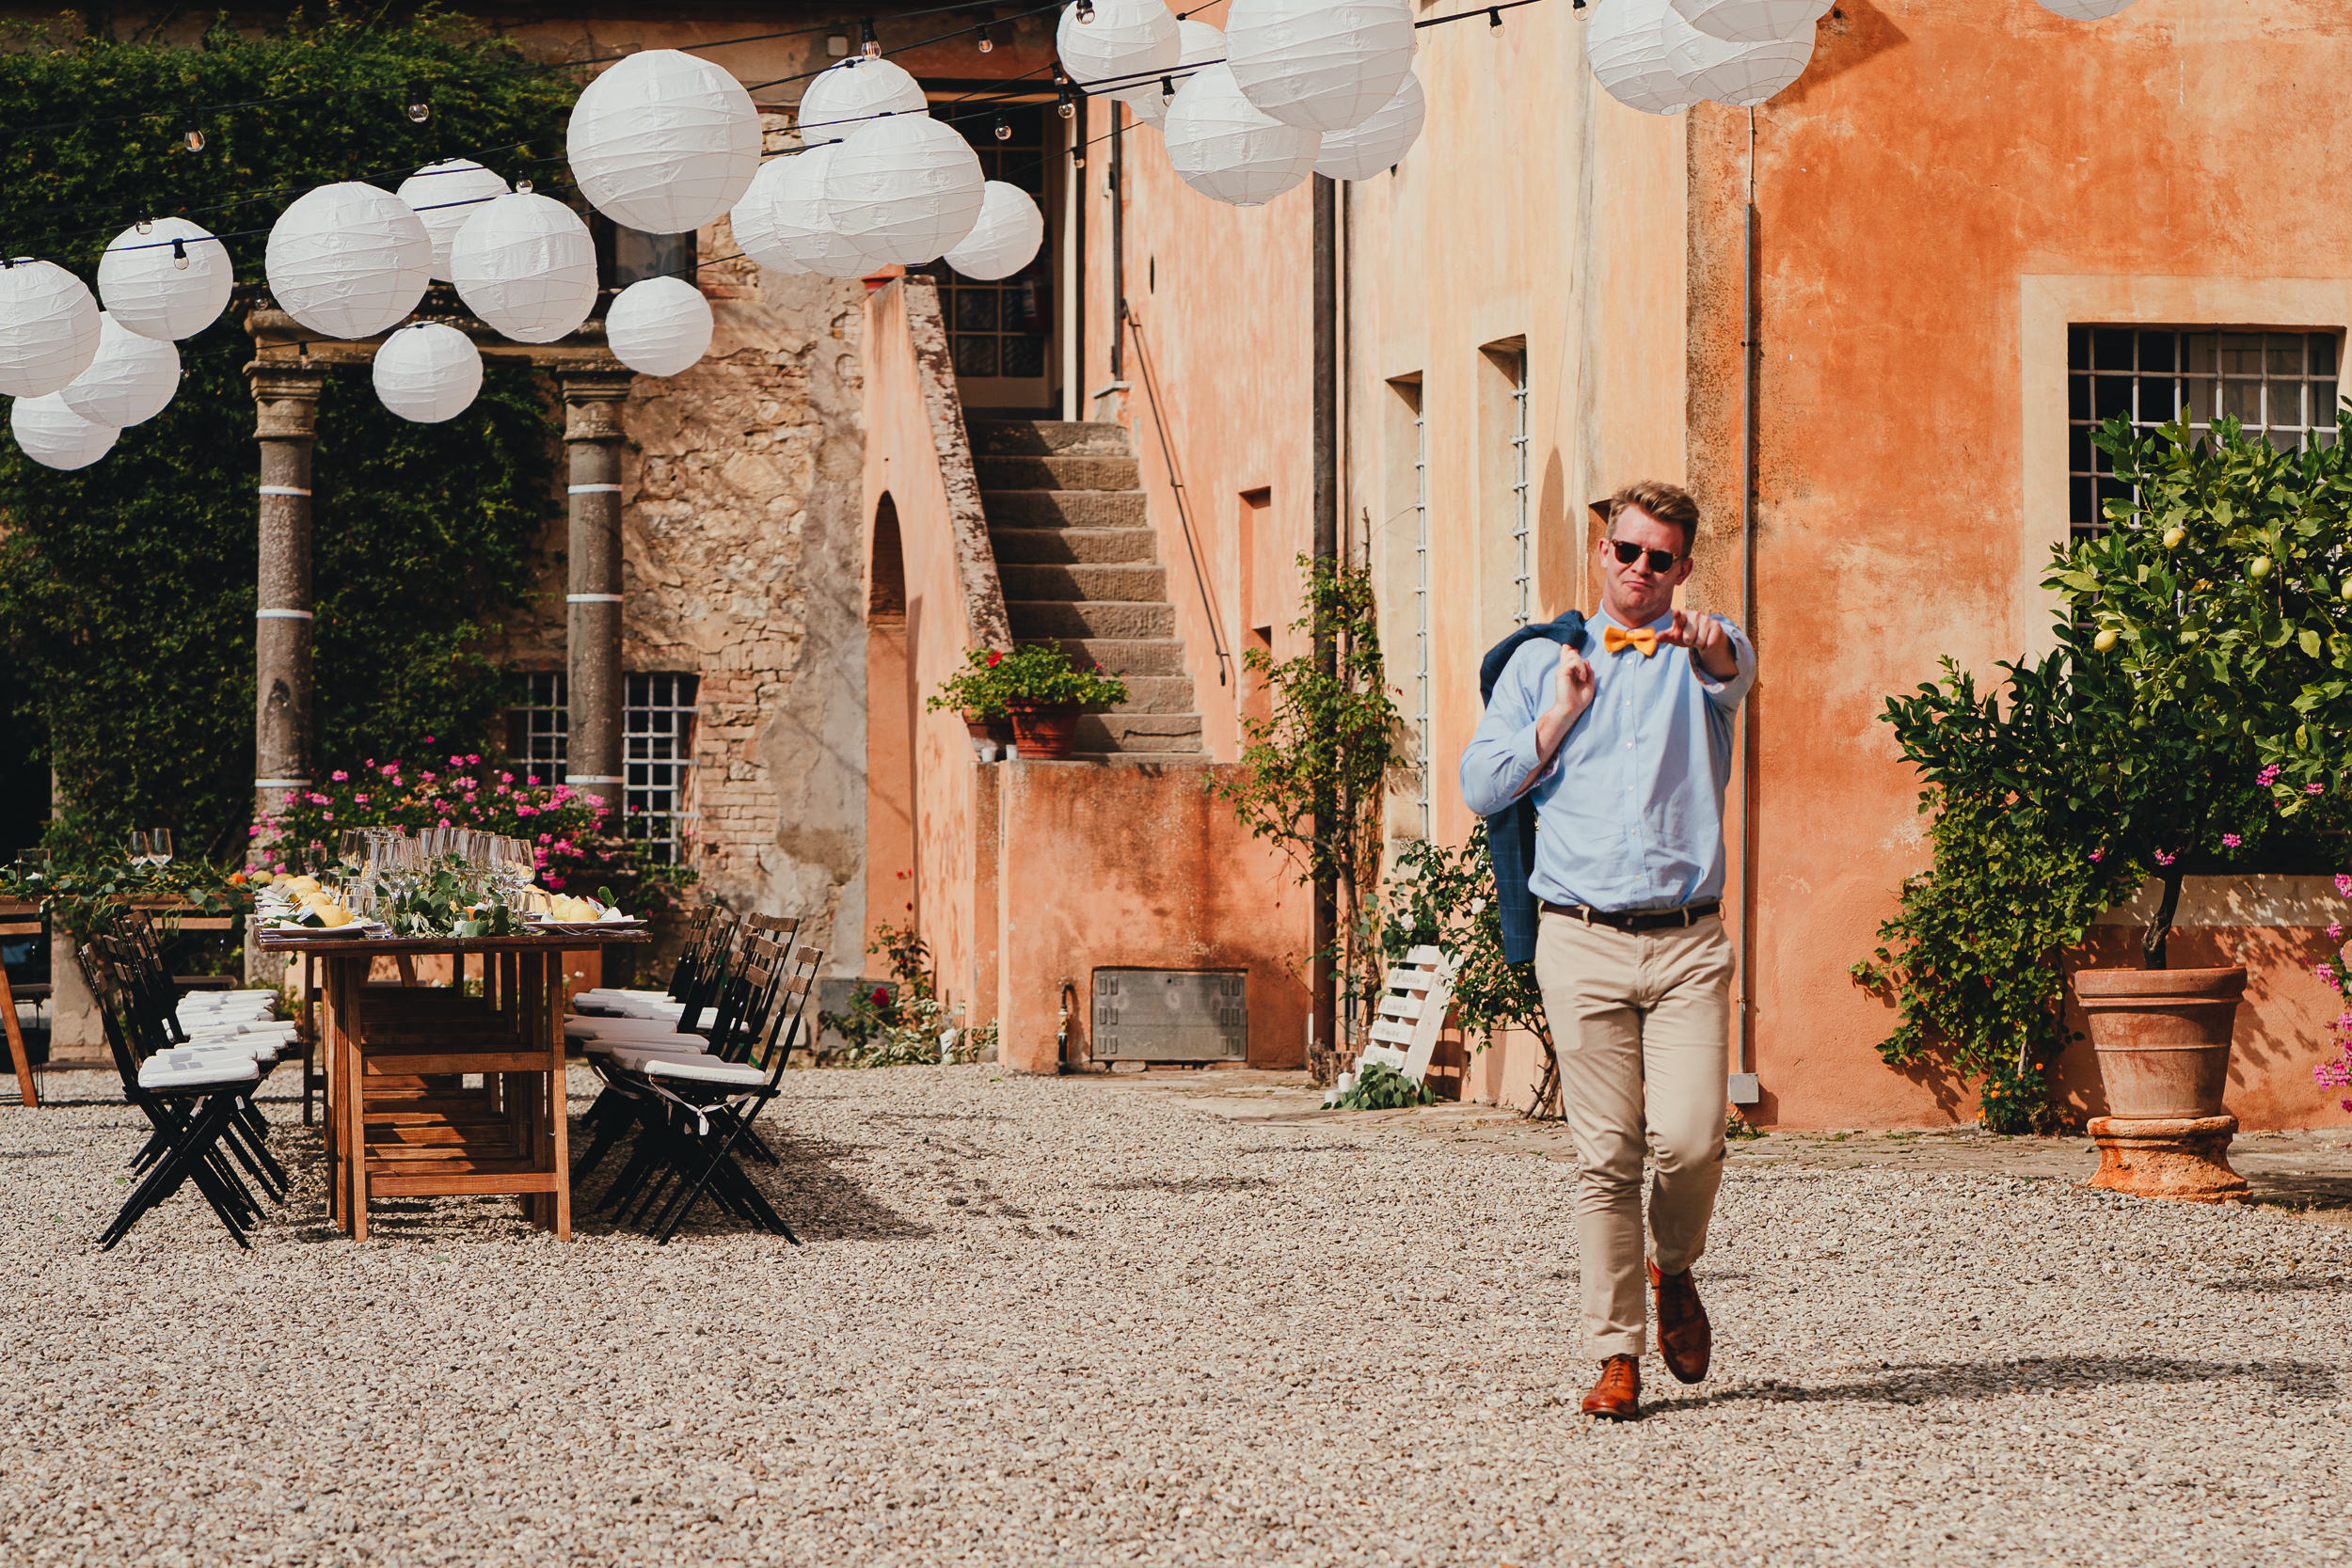 Tuscan Villa Wedding - wedding guest in the courtyard of the villa